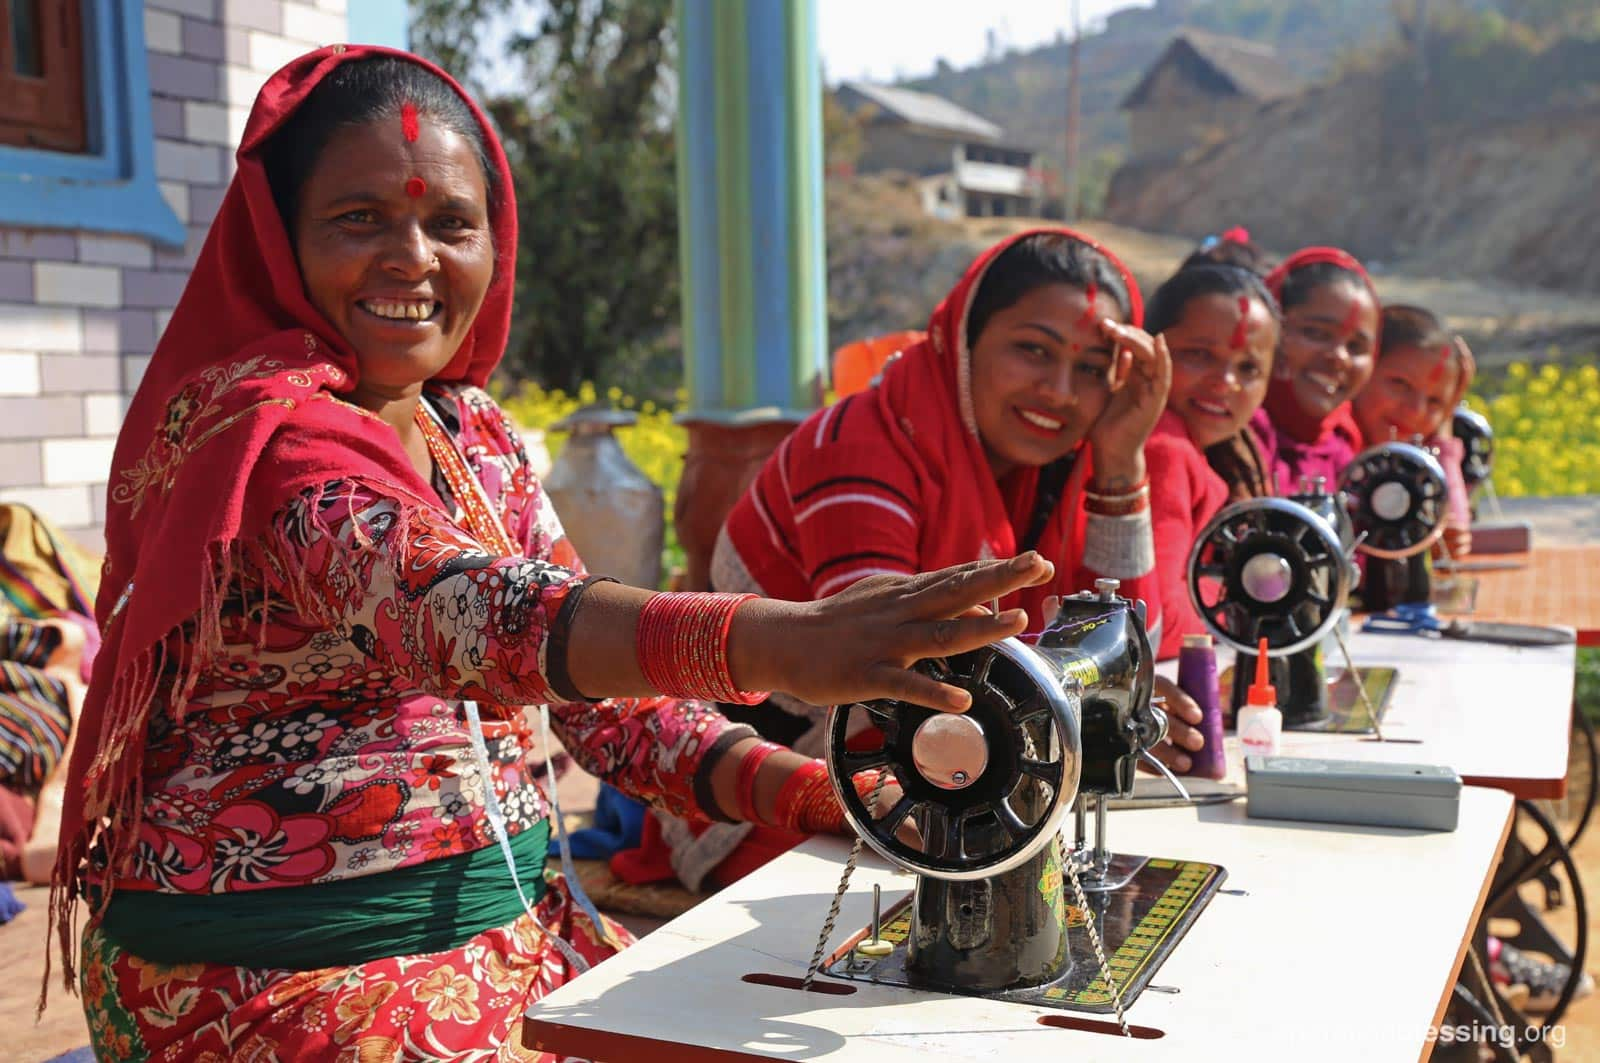 JULY: Impoverished women in Nepal are empowered through sewing lessons and the gift of sewing machines that help them support their families.